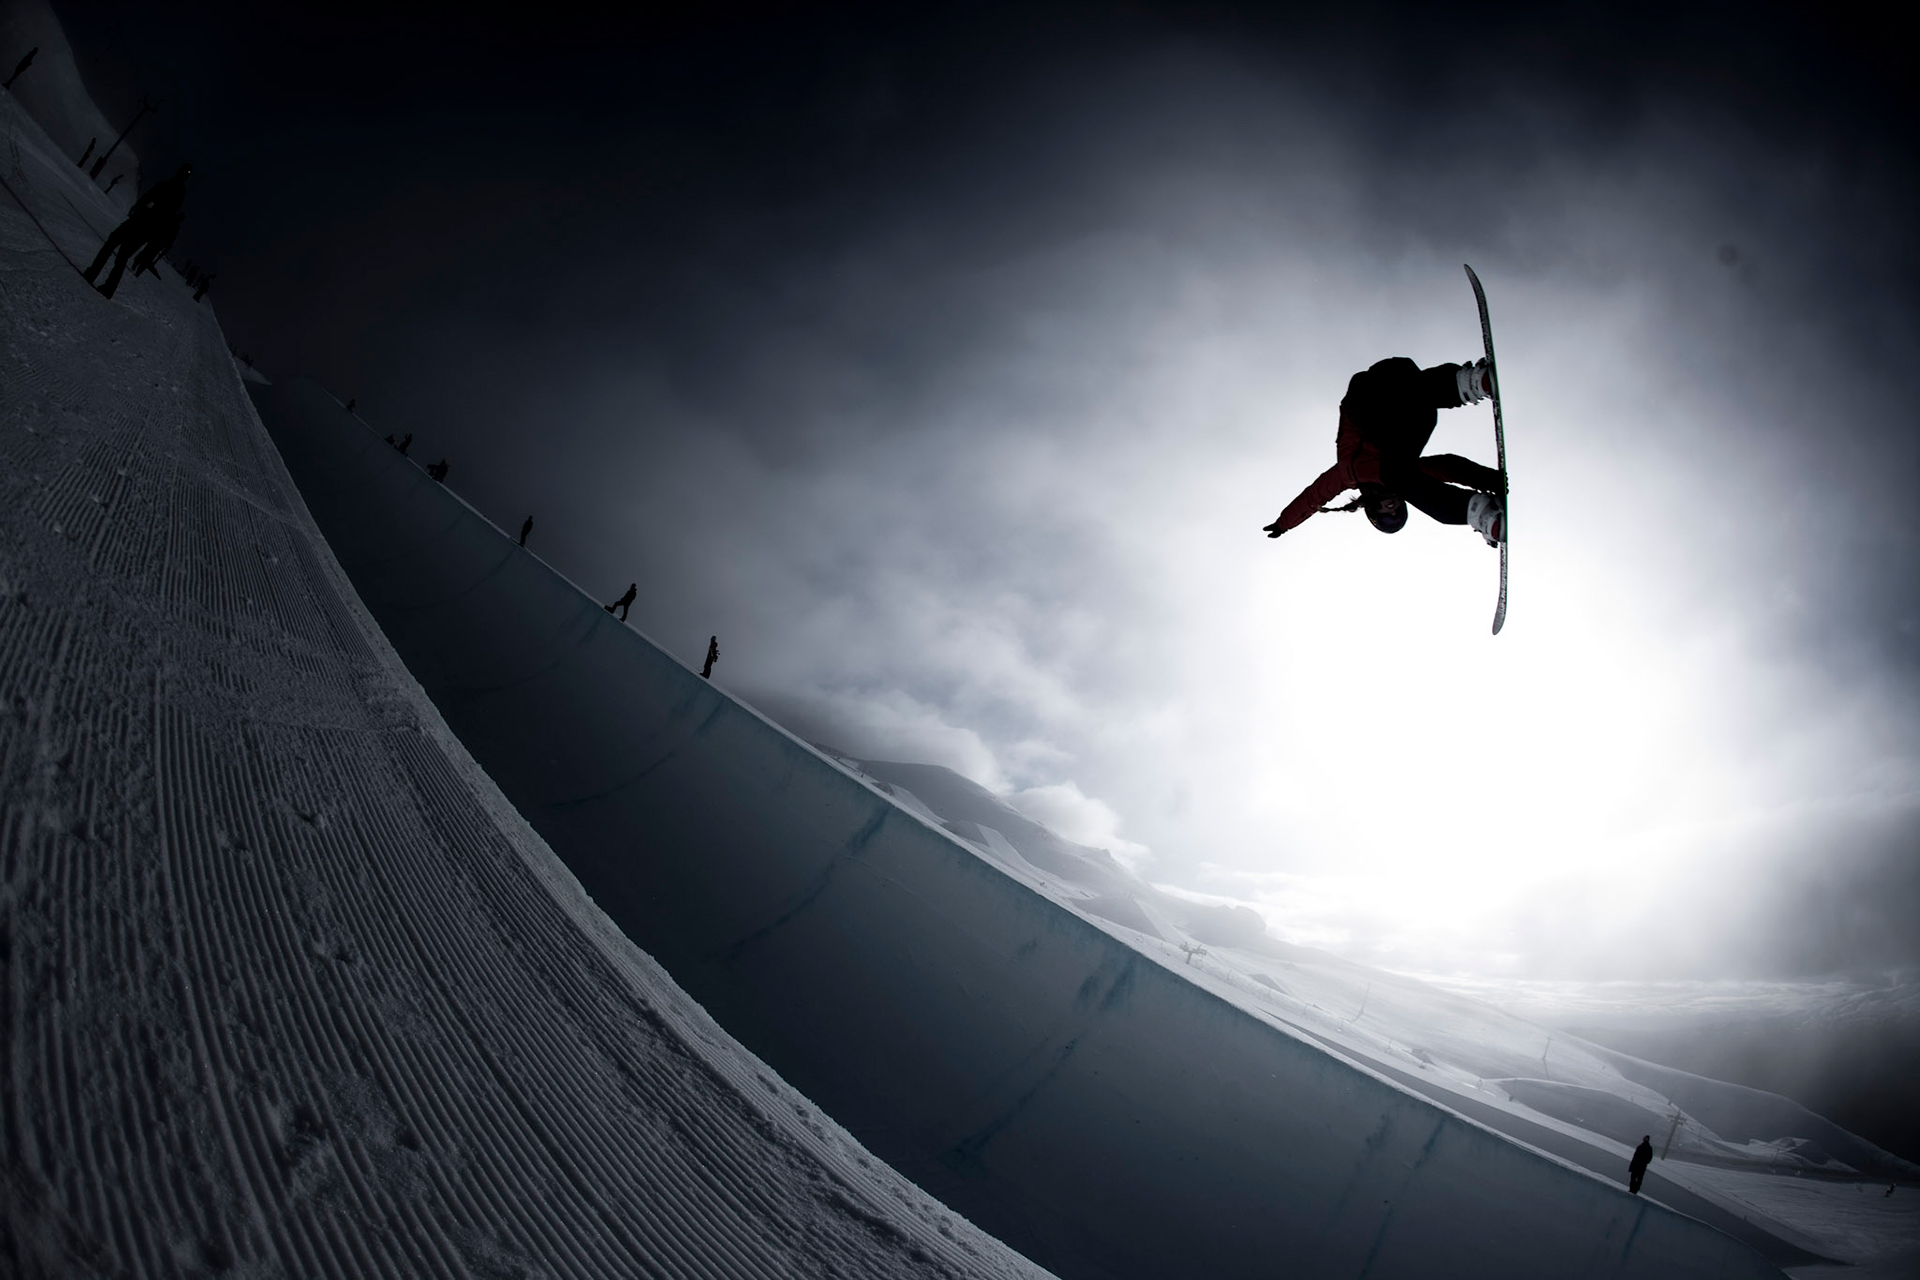 1920x1280 - Snowboarding Wallpapers 24